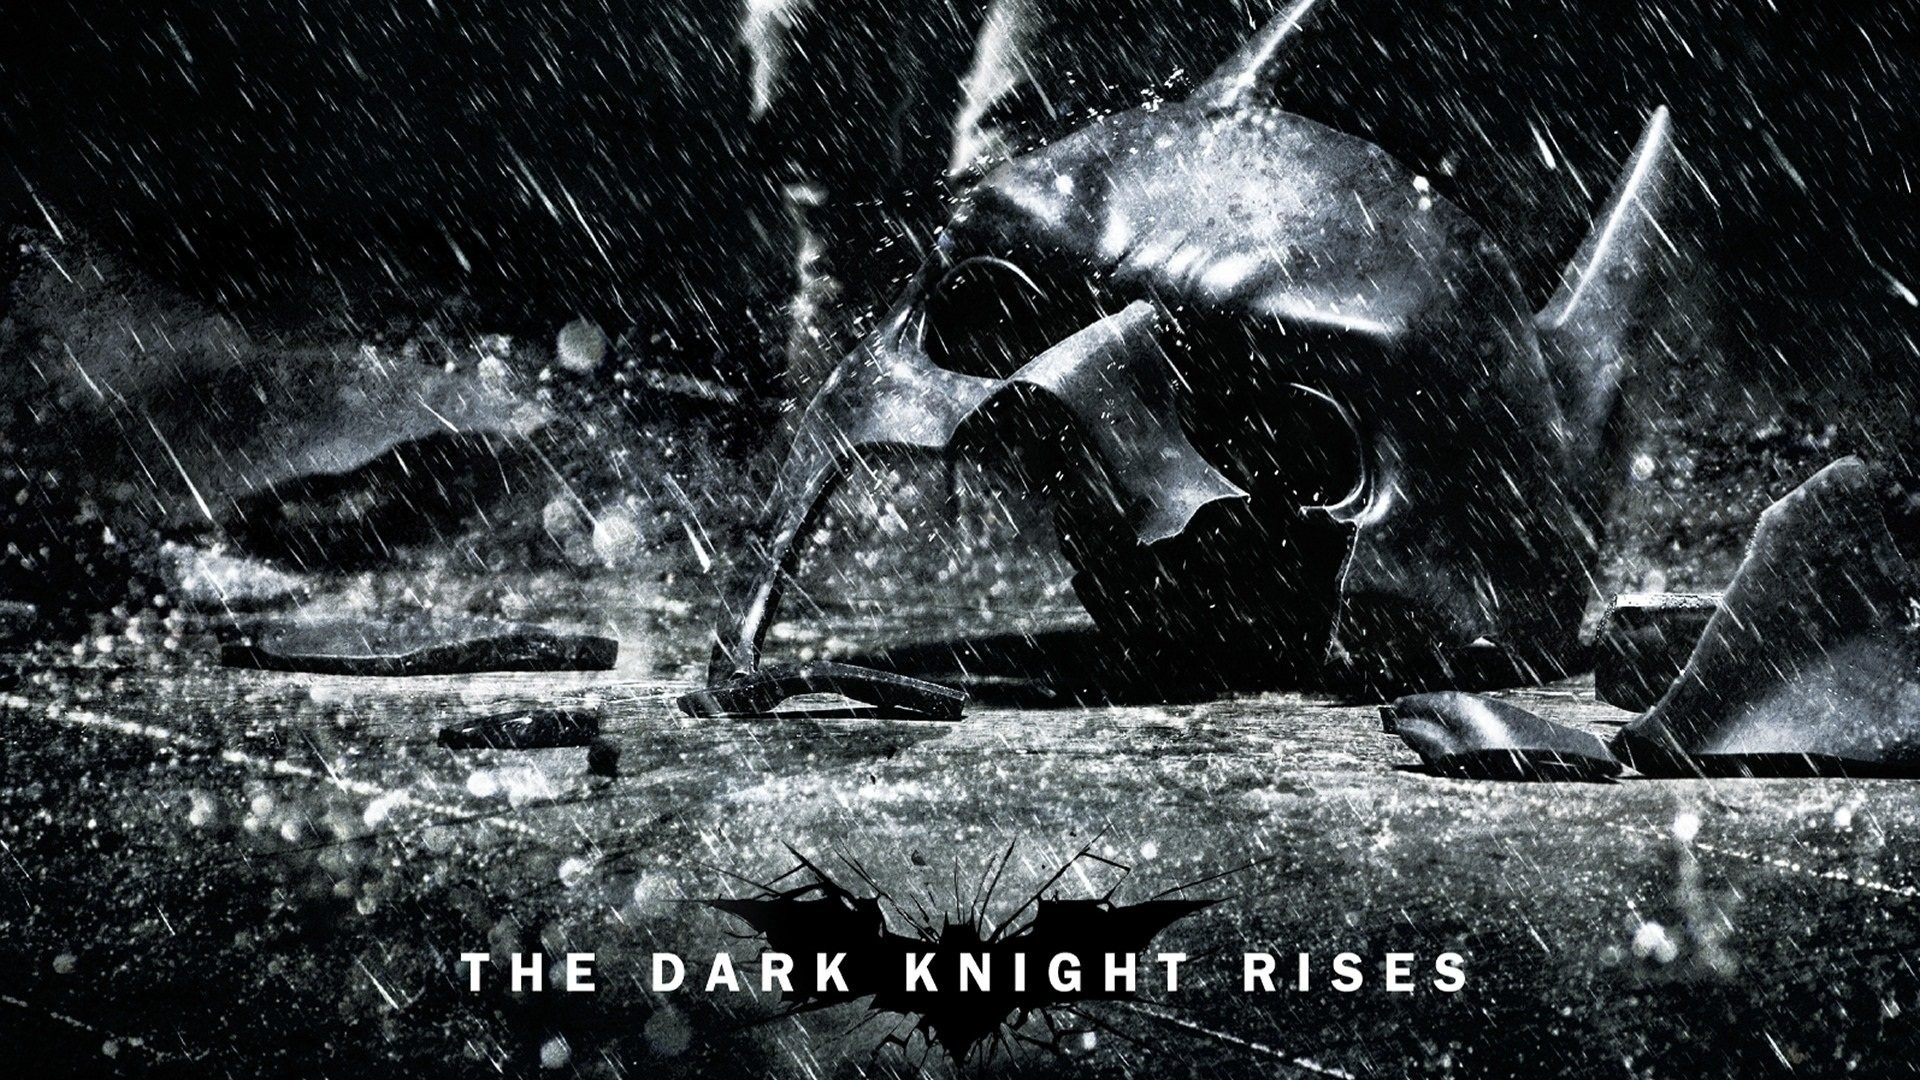 The dark knight rises wallpaper 1920x1080 80 images 1920x1080 filme the dark knight rises wallpaper voltagebd Image collections